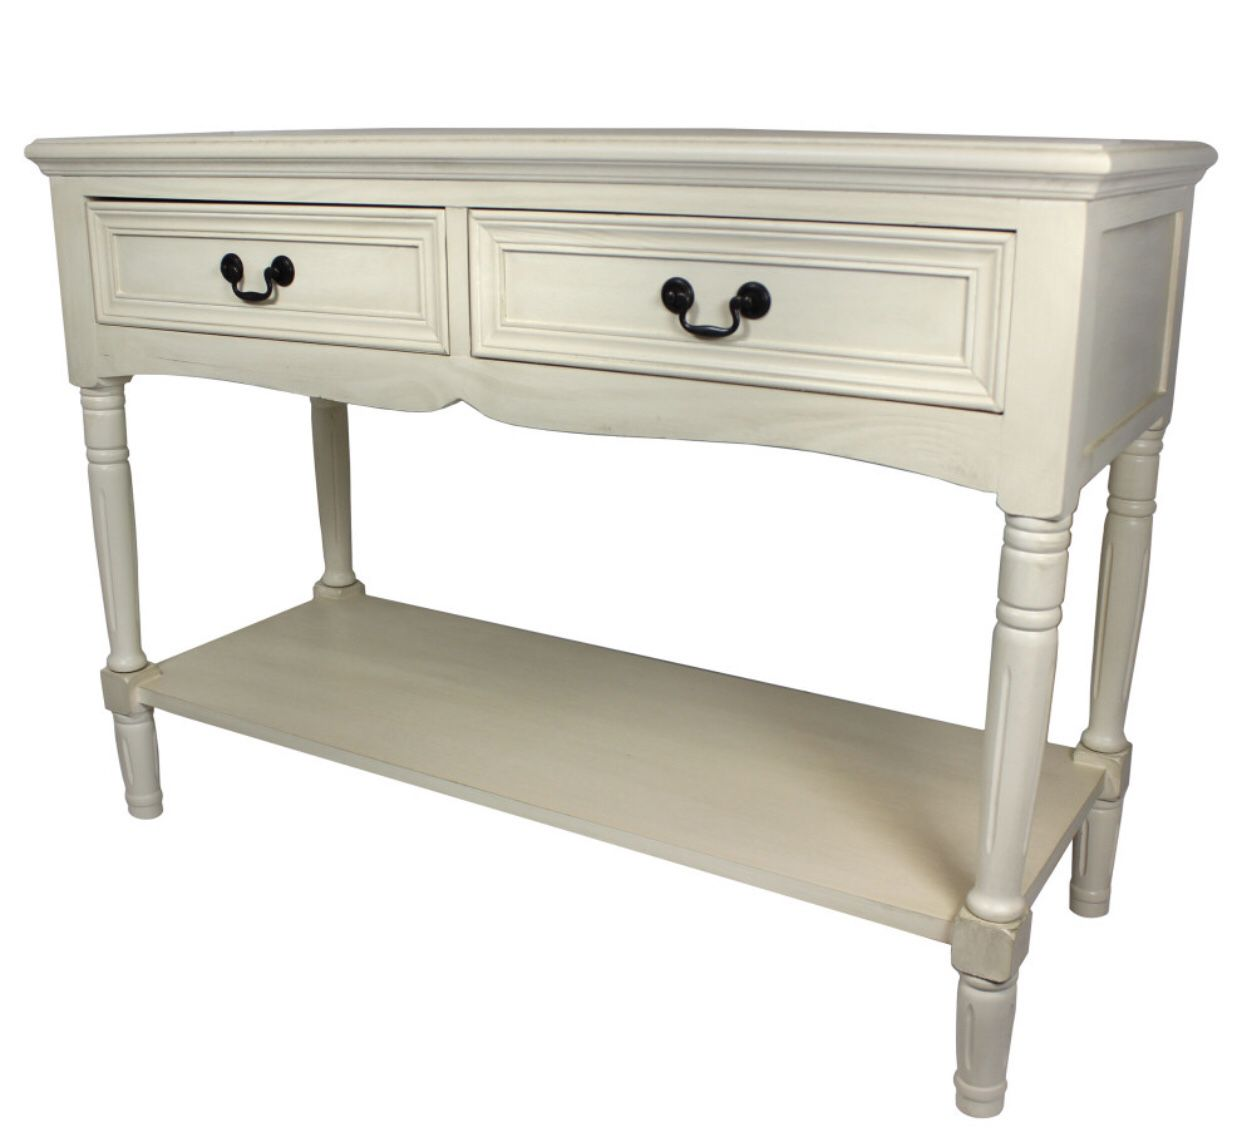 Avila Solid Wood 2-Drawer Console Table, Antiqued White